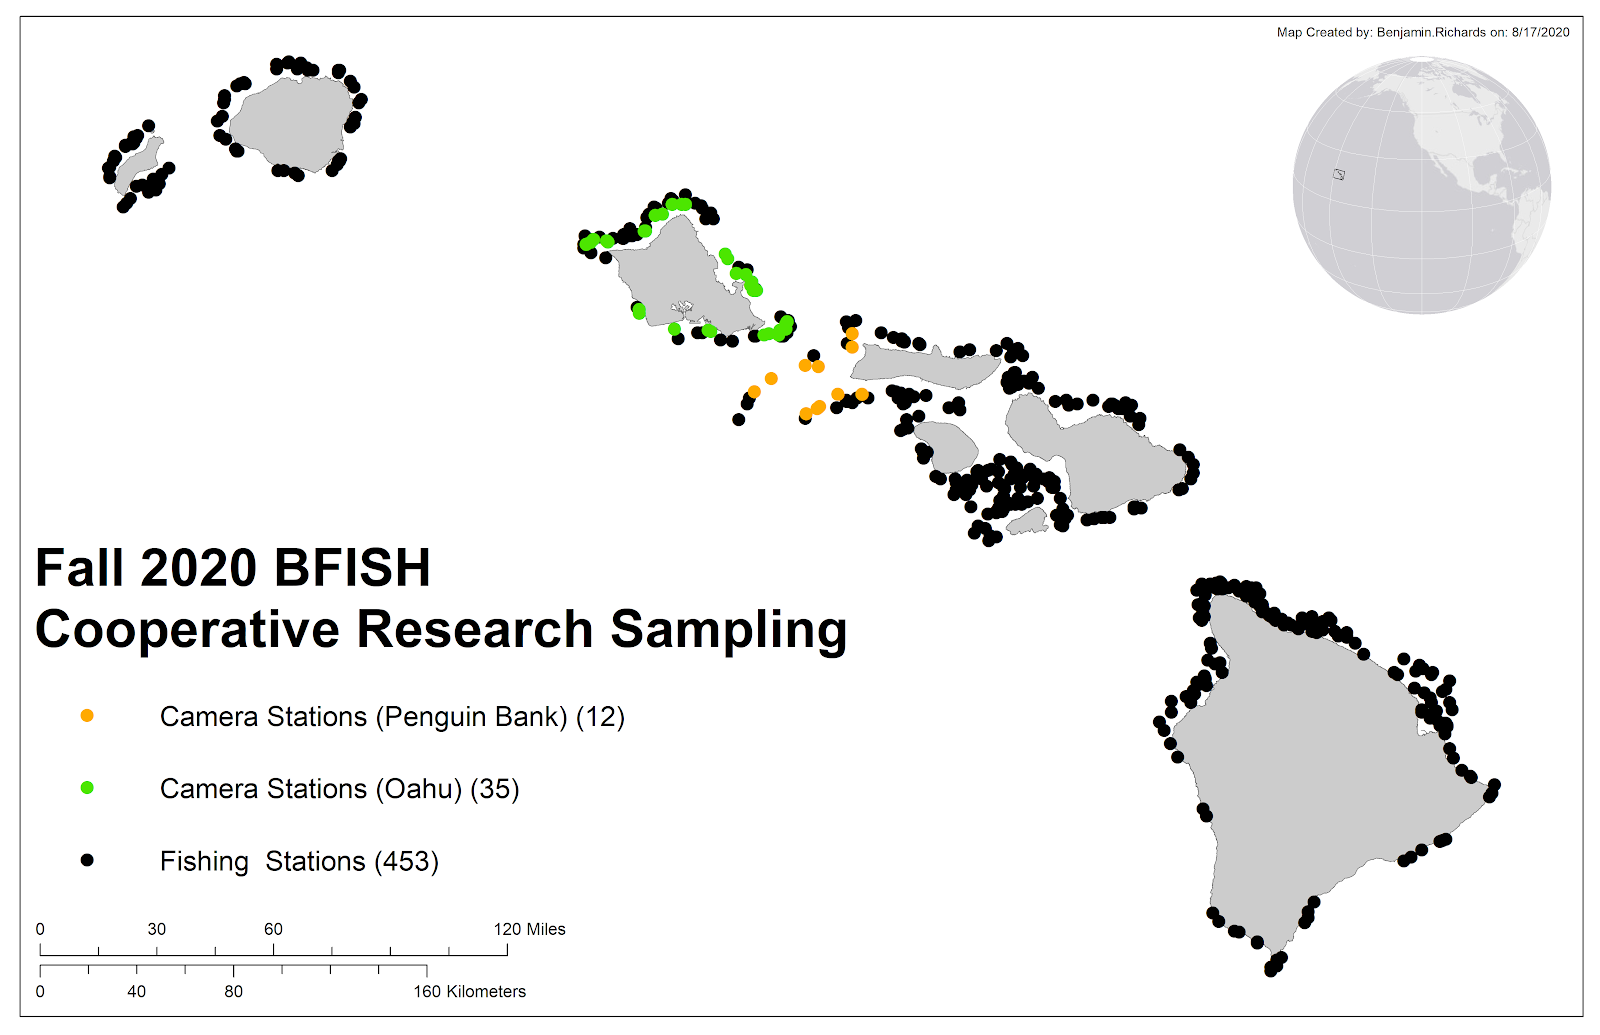 A map showing the locations of the fall 2020 BFISH sampling stations, including fishing and camera stations.